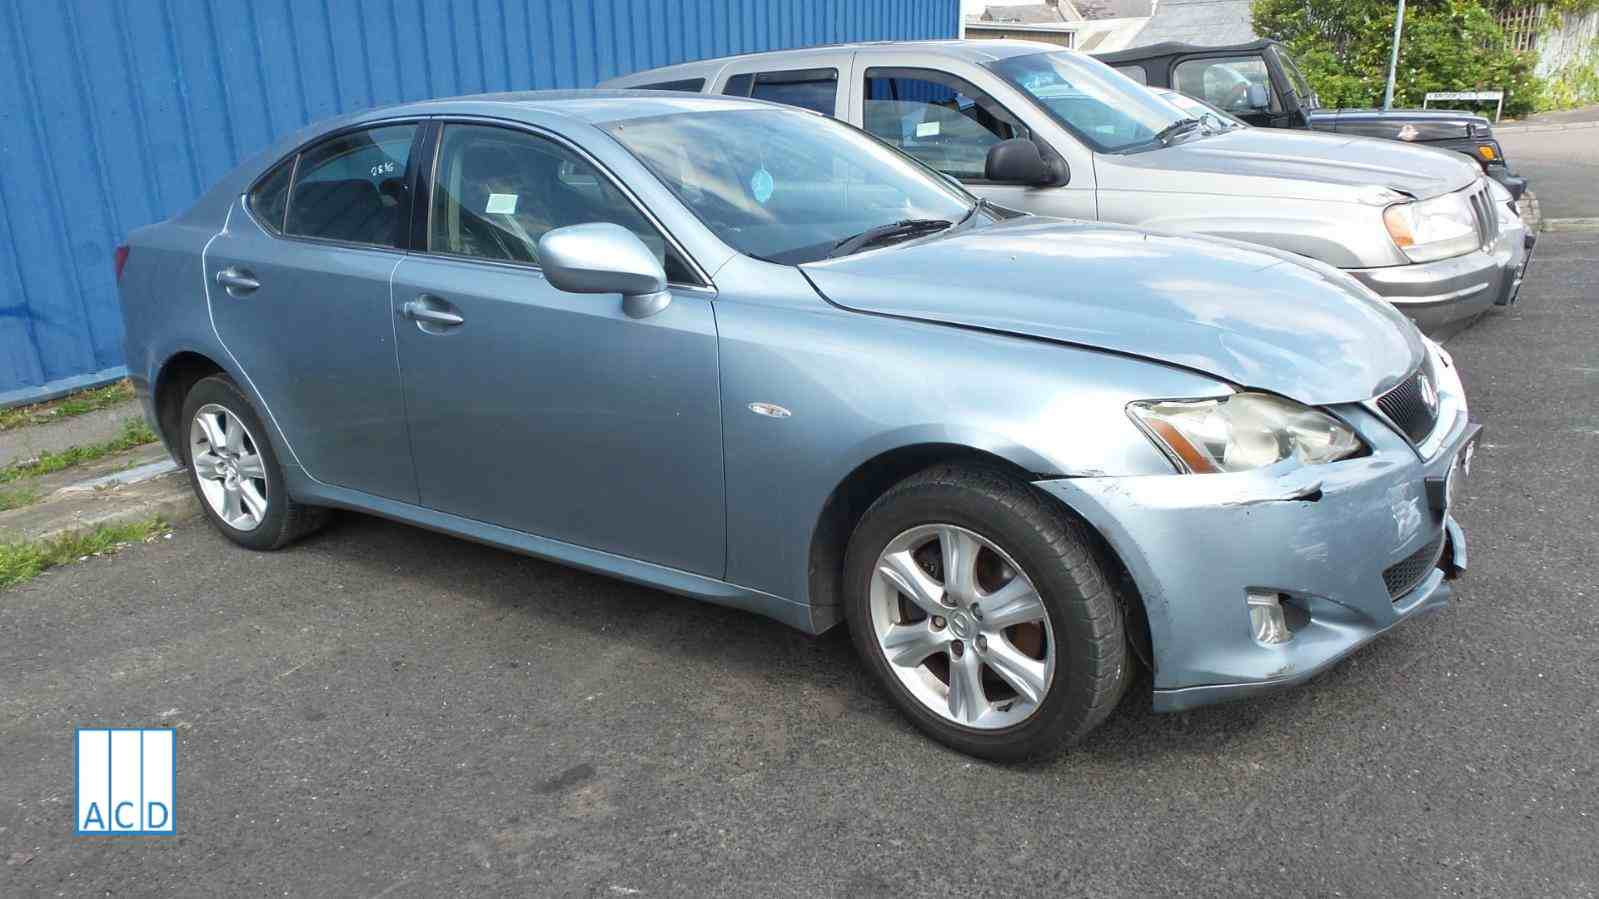 Lexus IS 220D 2.2L Petrol 6-Speed Manual 2007 #2846 01